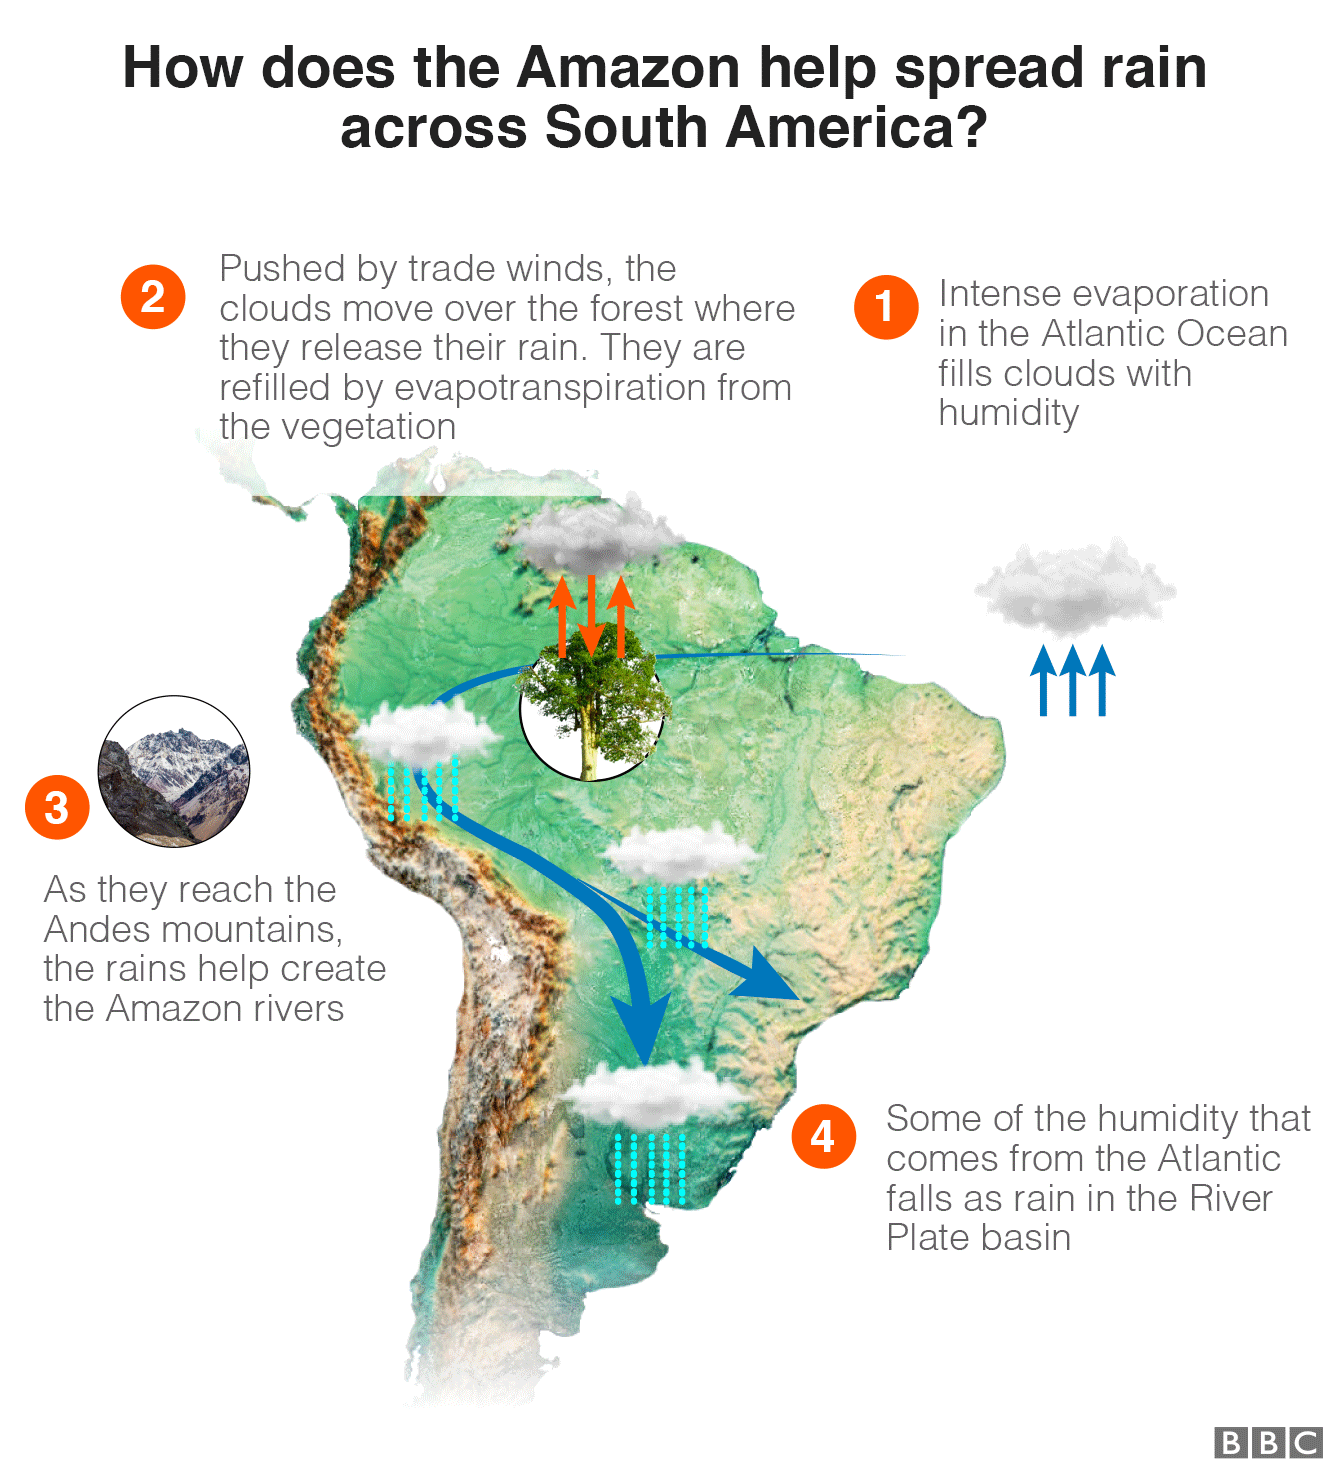 Graphic showing how the Amazon distributes rain around South America: 1: Intense evaporation in the Atlantic Ocean fills clouds with humidity 2: Pushed by trade winds, the clouds move over the forest where they release their rain. They are refilled by evapotranspiration from the vegetation 3: As they reach the mountains, the rains help create the Amazon rivers, 4: Some of the humidity that comes from the Atlantic falls as rain in the River Plate basin